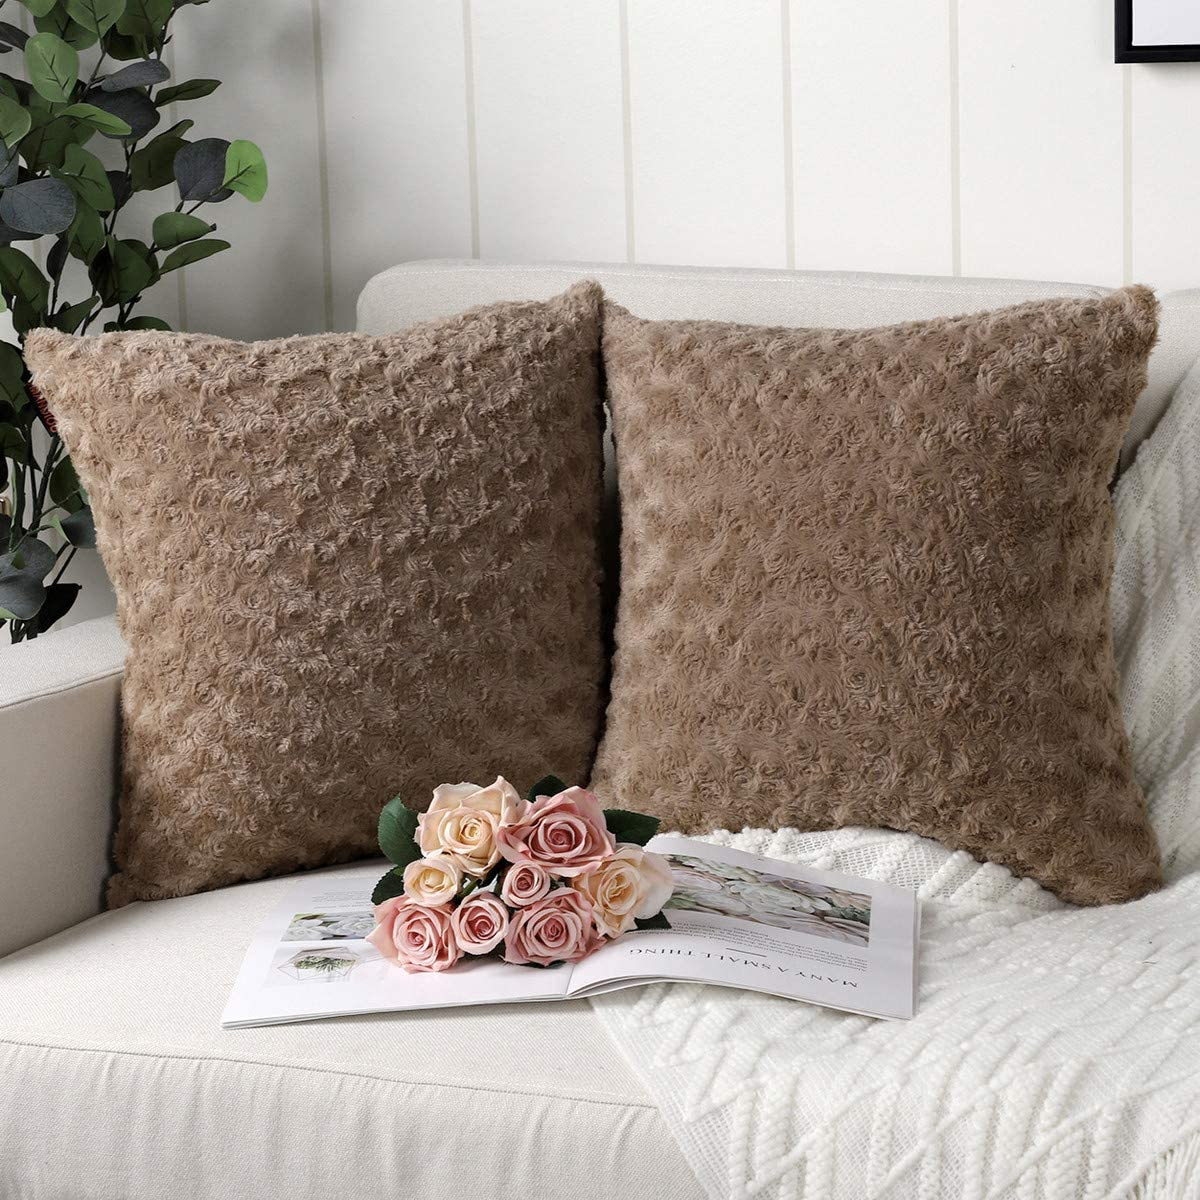 Mandioo Pack of 2 Brown Faux Fur 3D Flower Pattern Fuzzy Cozy Soft Decorative Throw Pillow Covers Set Cushion Cases Pillowcases for Couch Sofa Bedroom Car 20x20 Inches